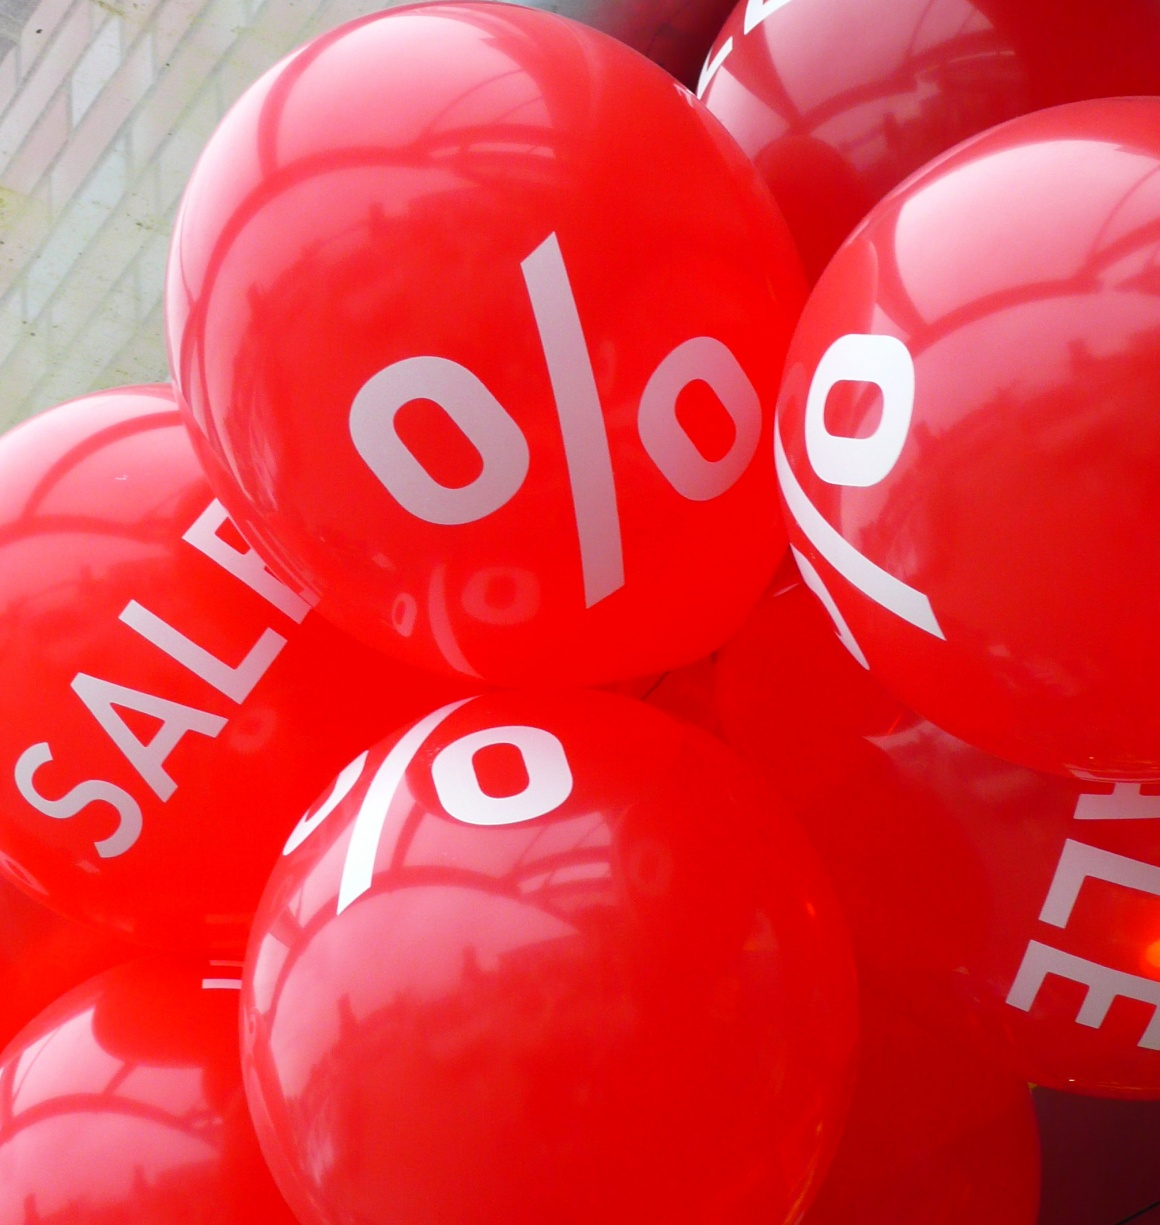 red balloons with sales promotion text